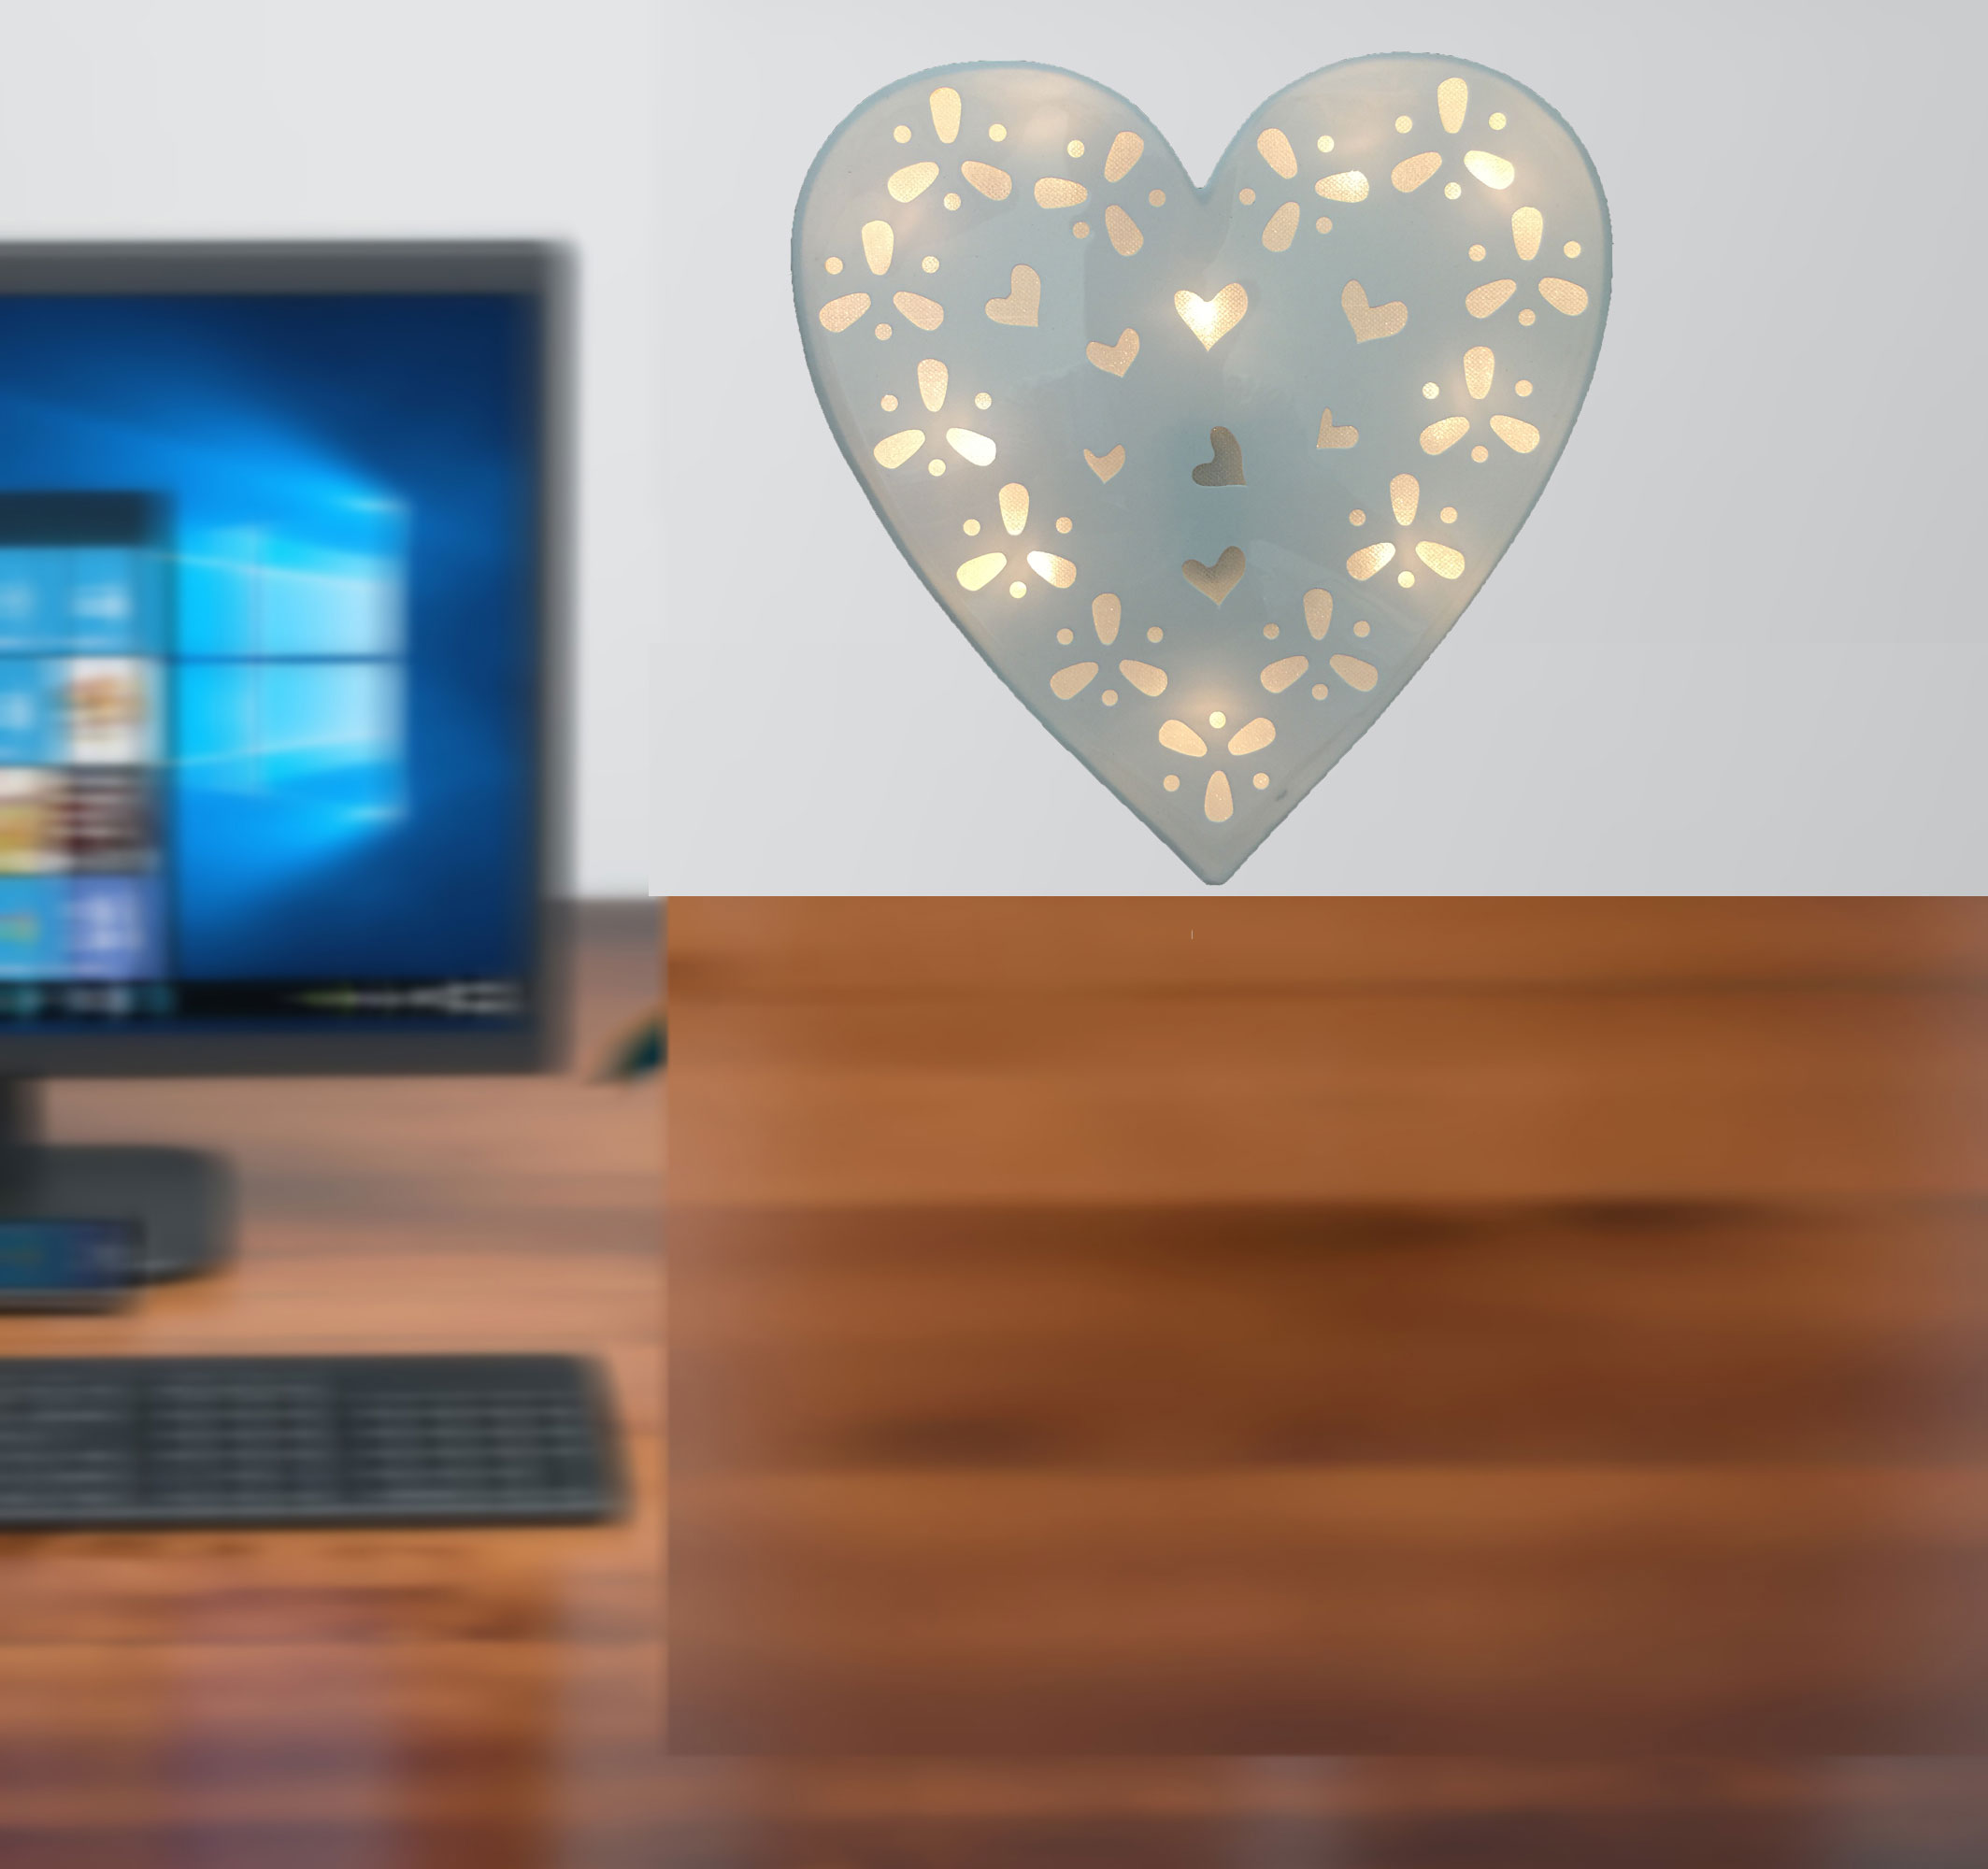 Creative Motion Lighted Heart Love Hanging Desk Top Battery-Operated 10 Light Warmwhite LED Heart Light with White PVC Holographic Paper; Product Size: 9.44x 9.84x 0.78